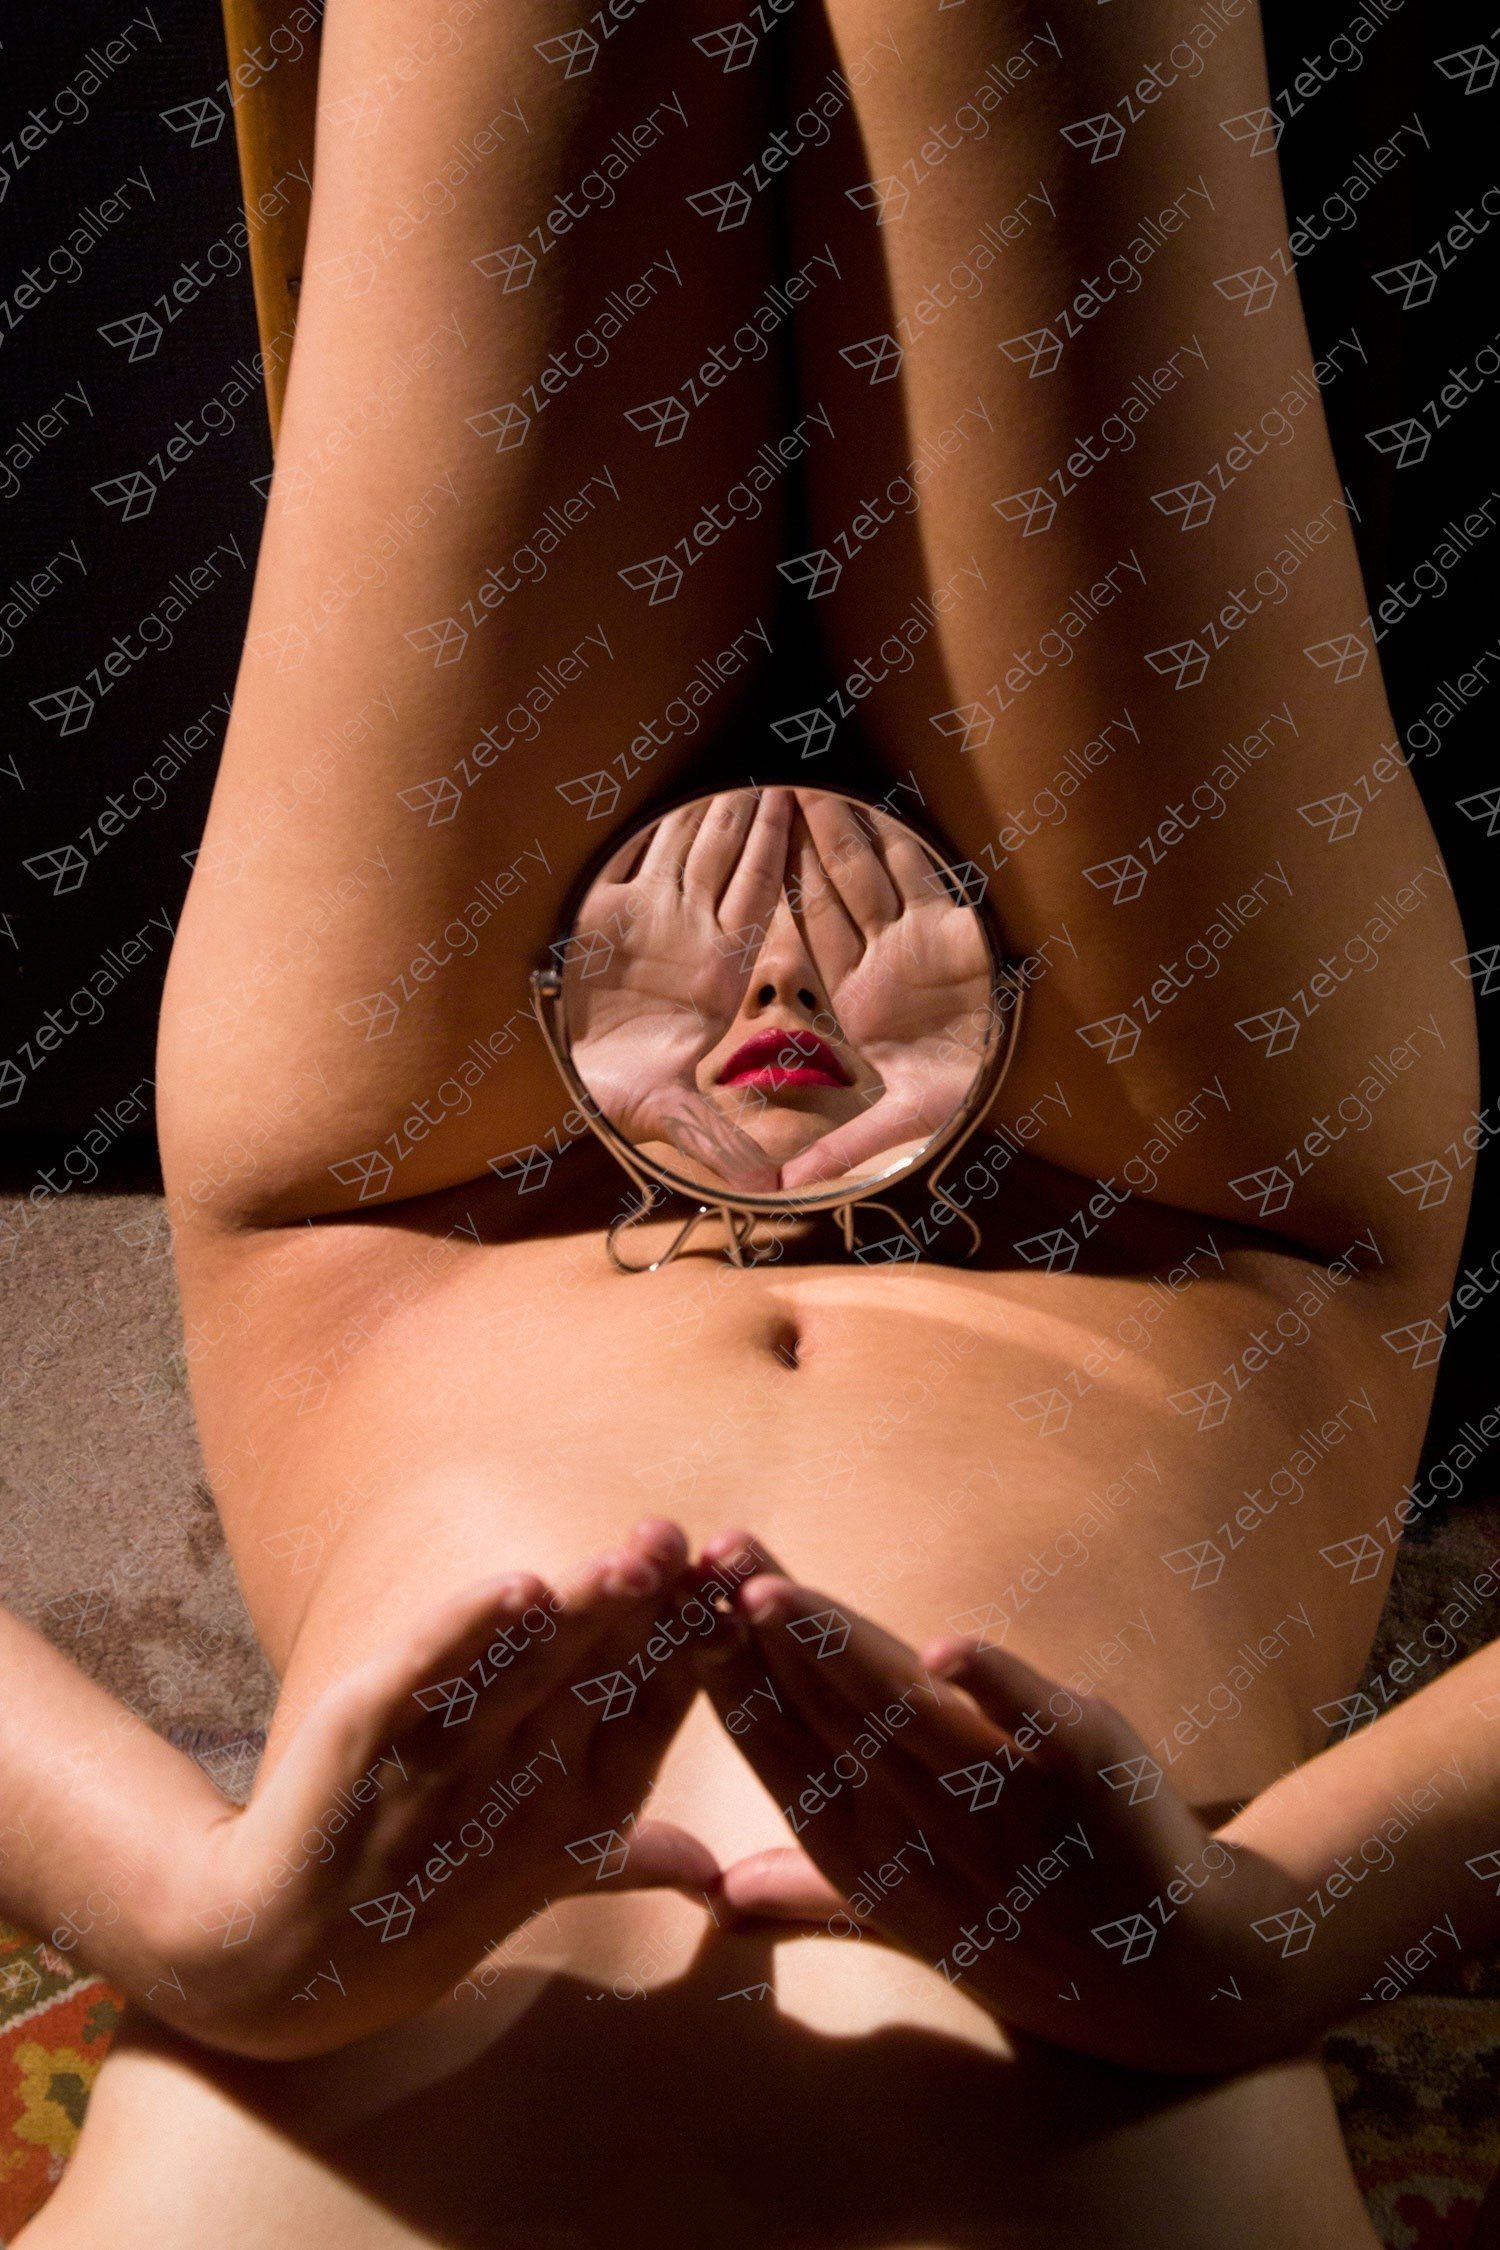 Zex Mirror, original Body Digital Photography by Alva Bernadine